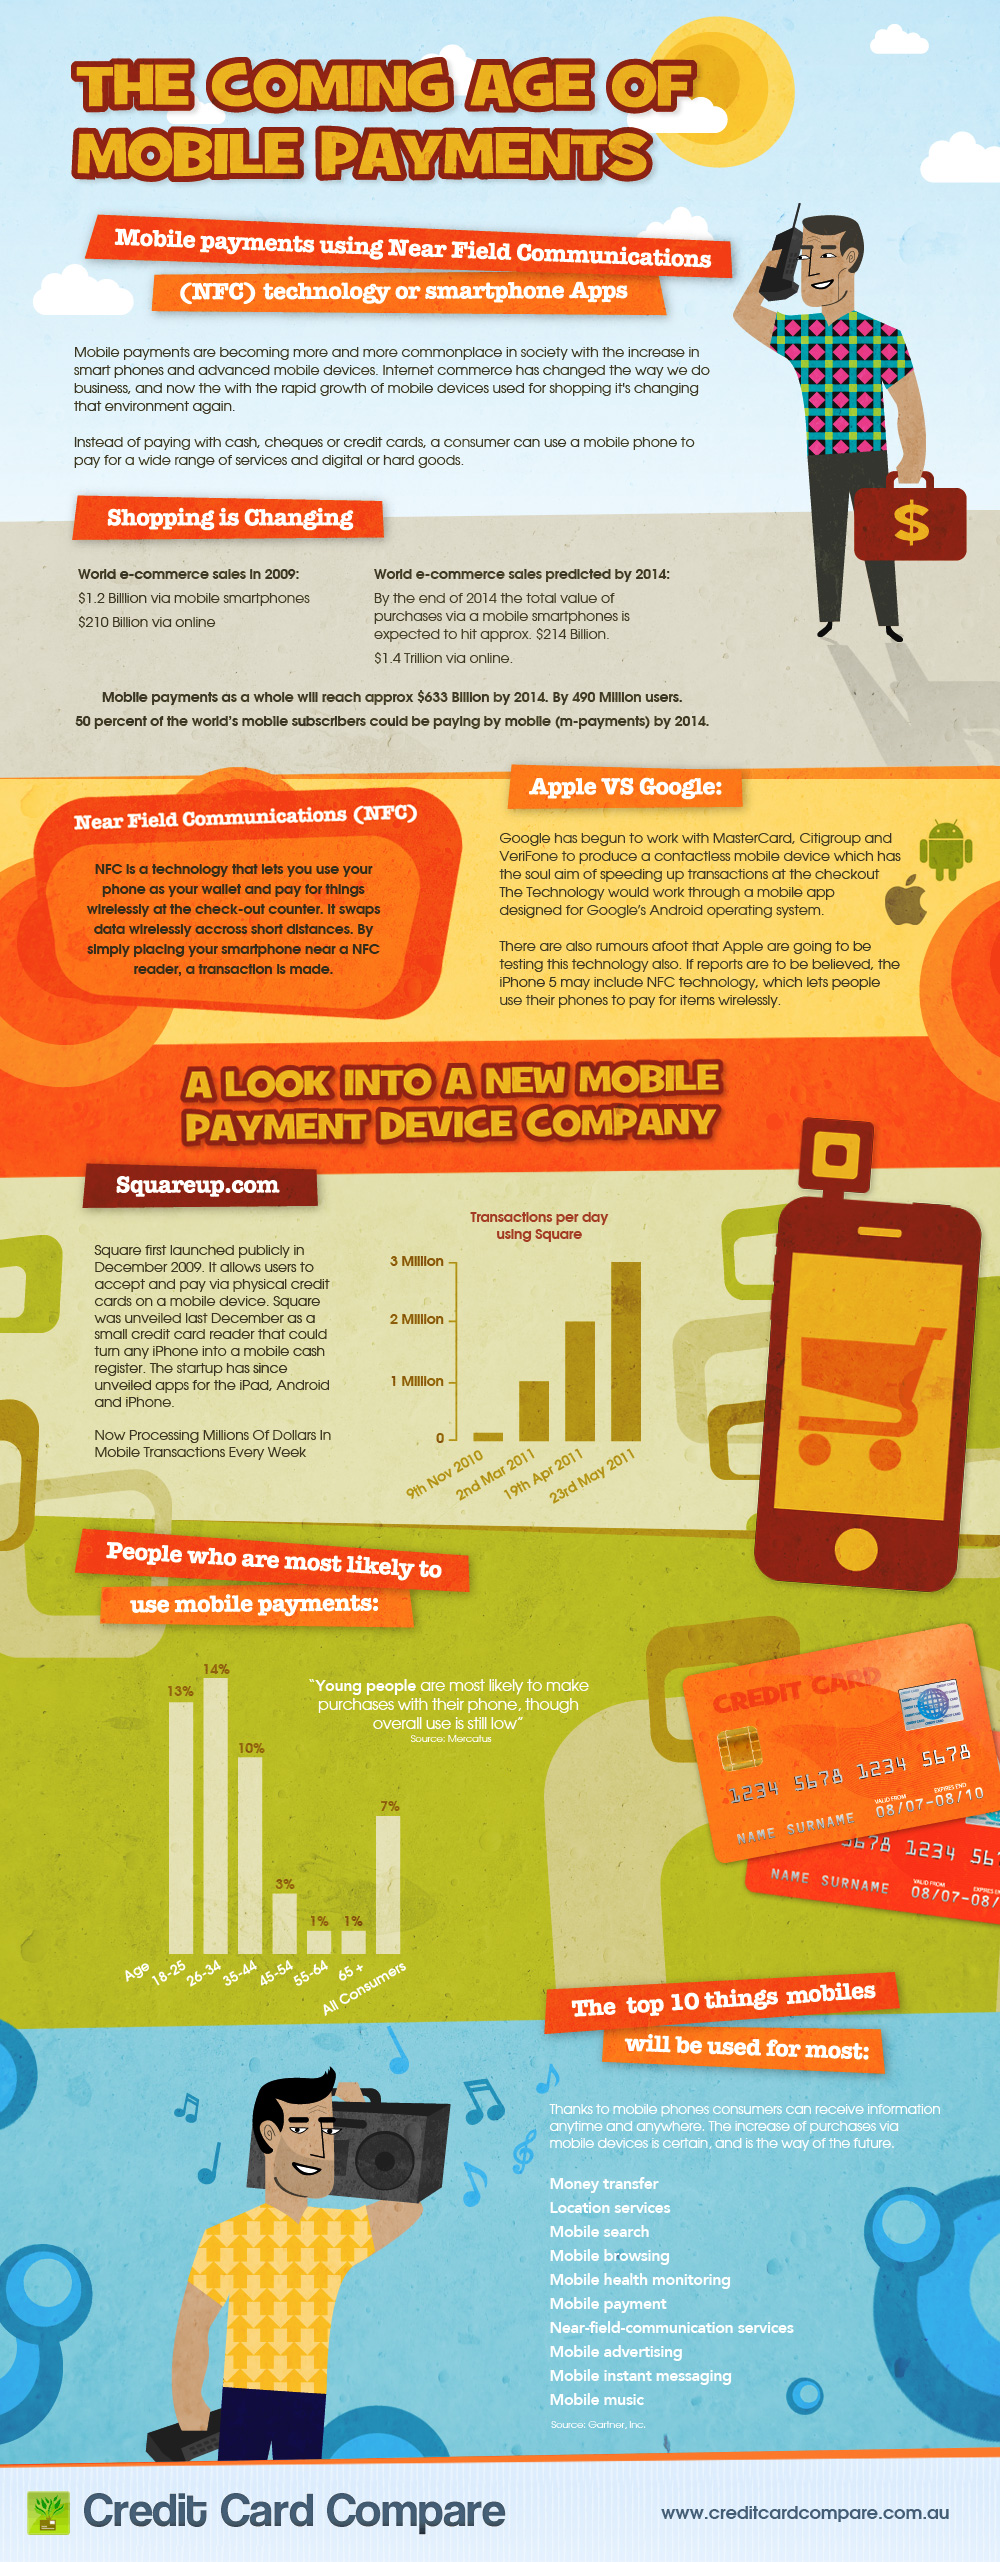 The Coming Age of Mobile Payments